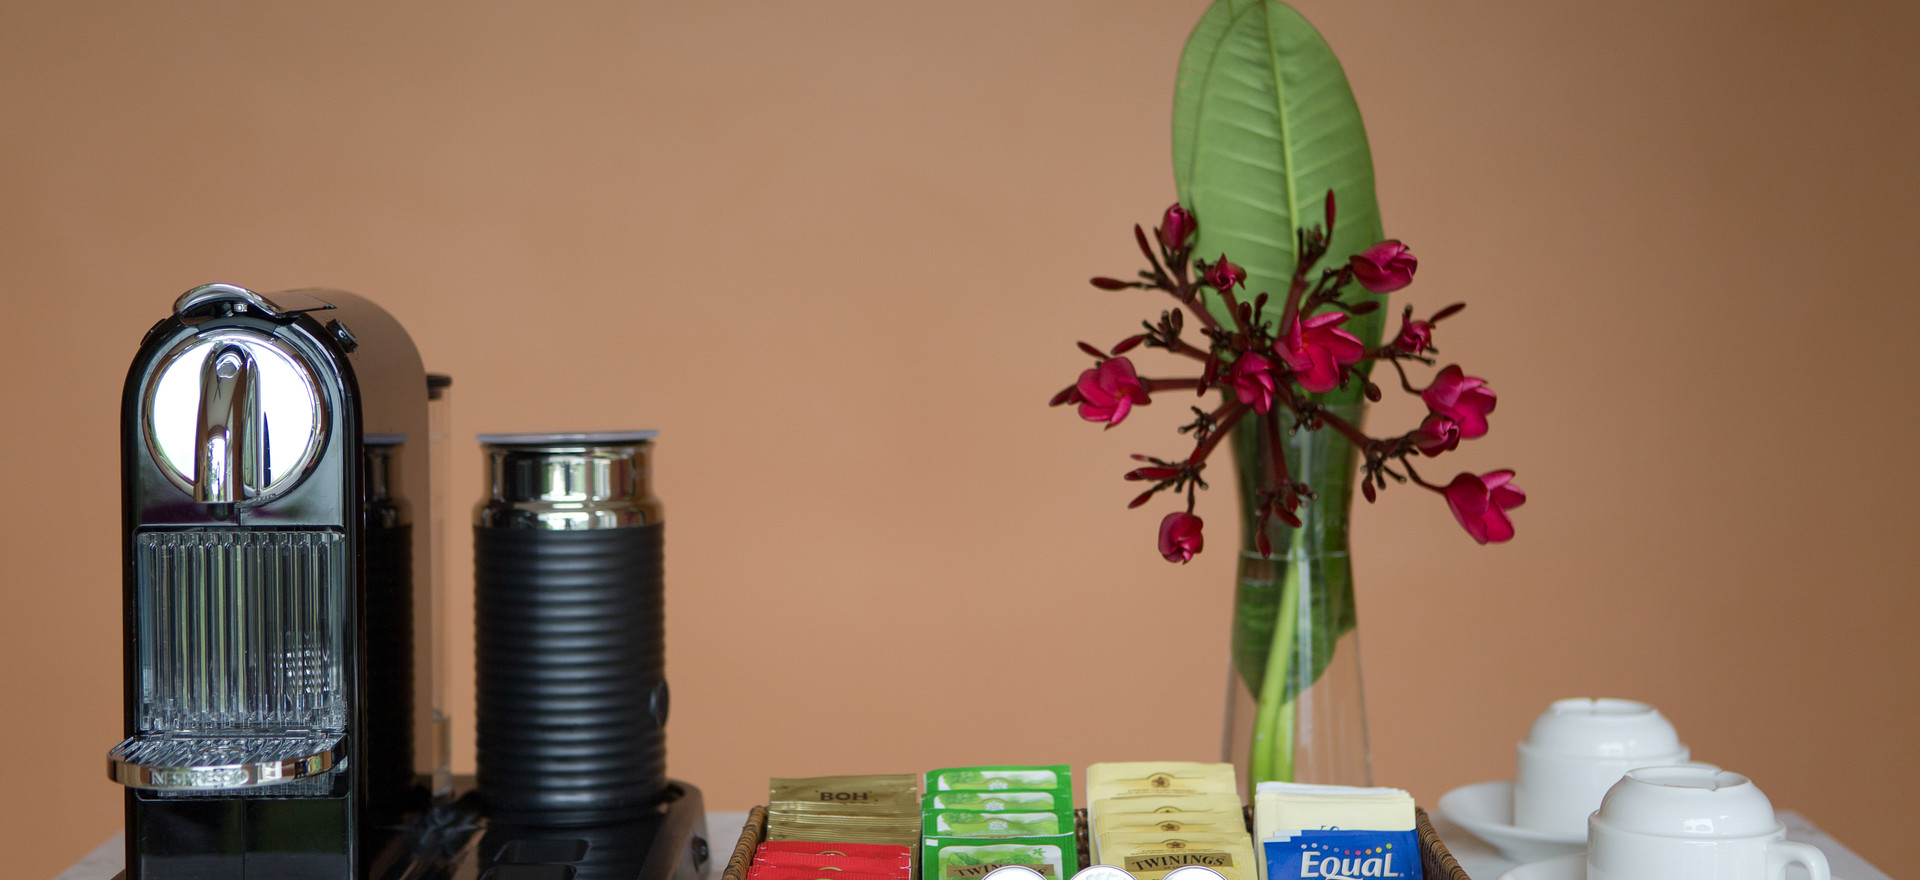 Coffee _ Tea Amenities In-Villa